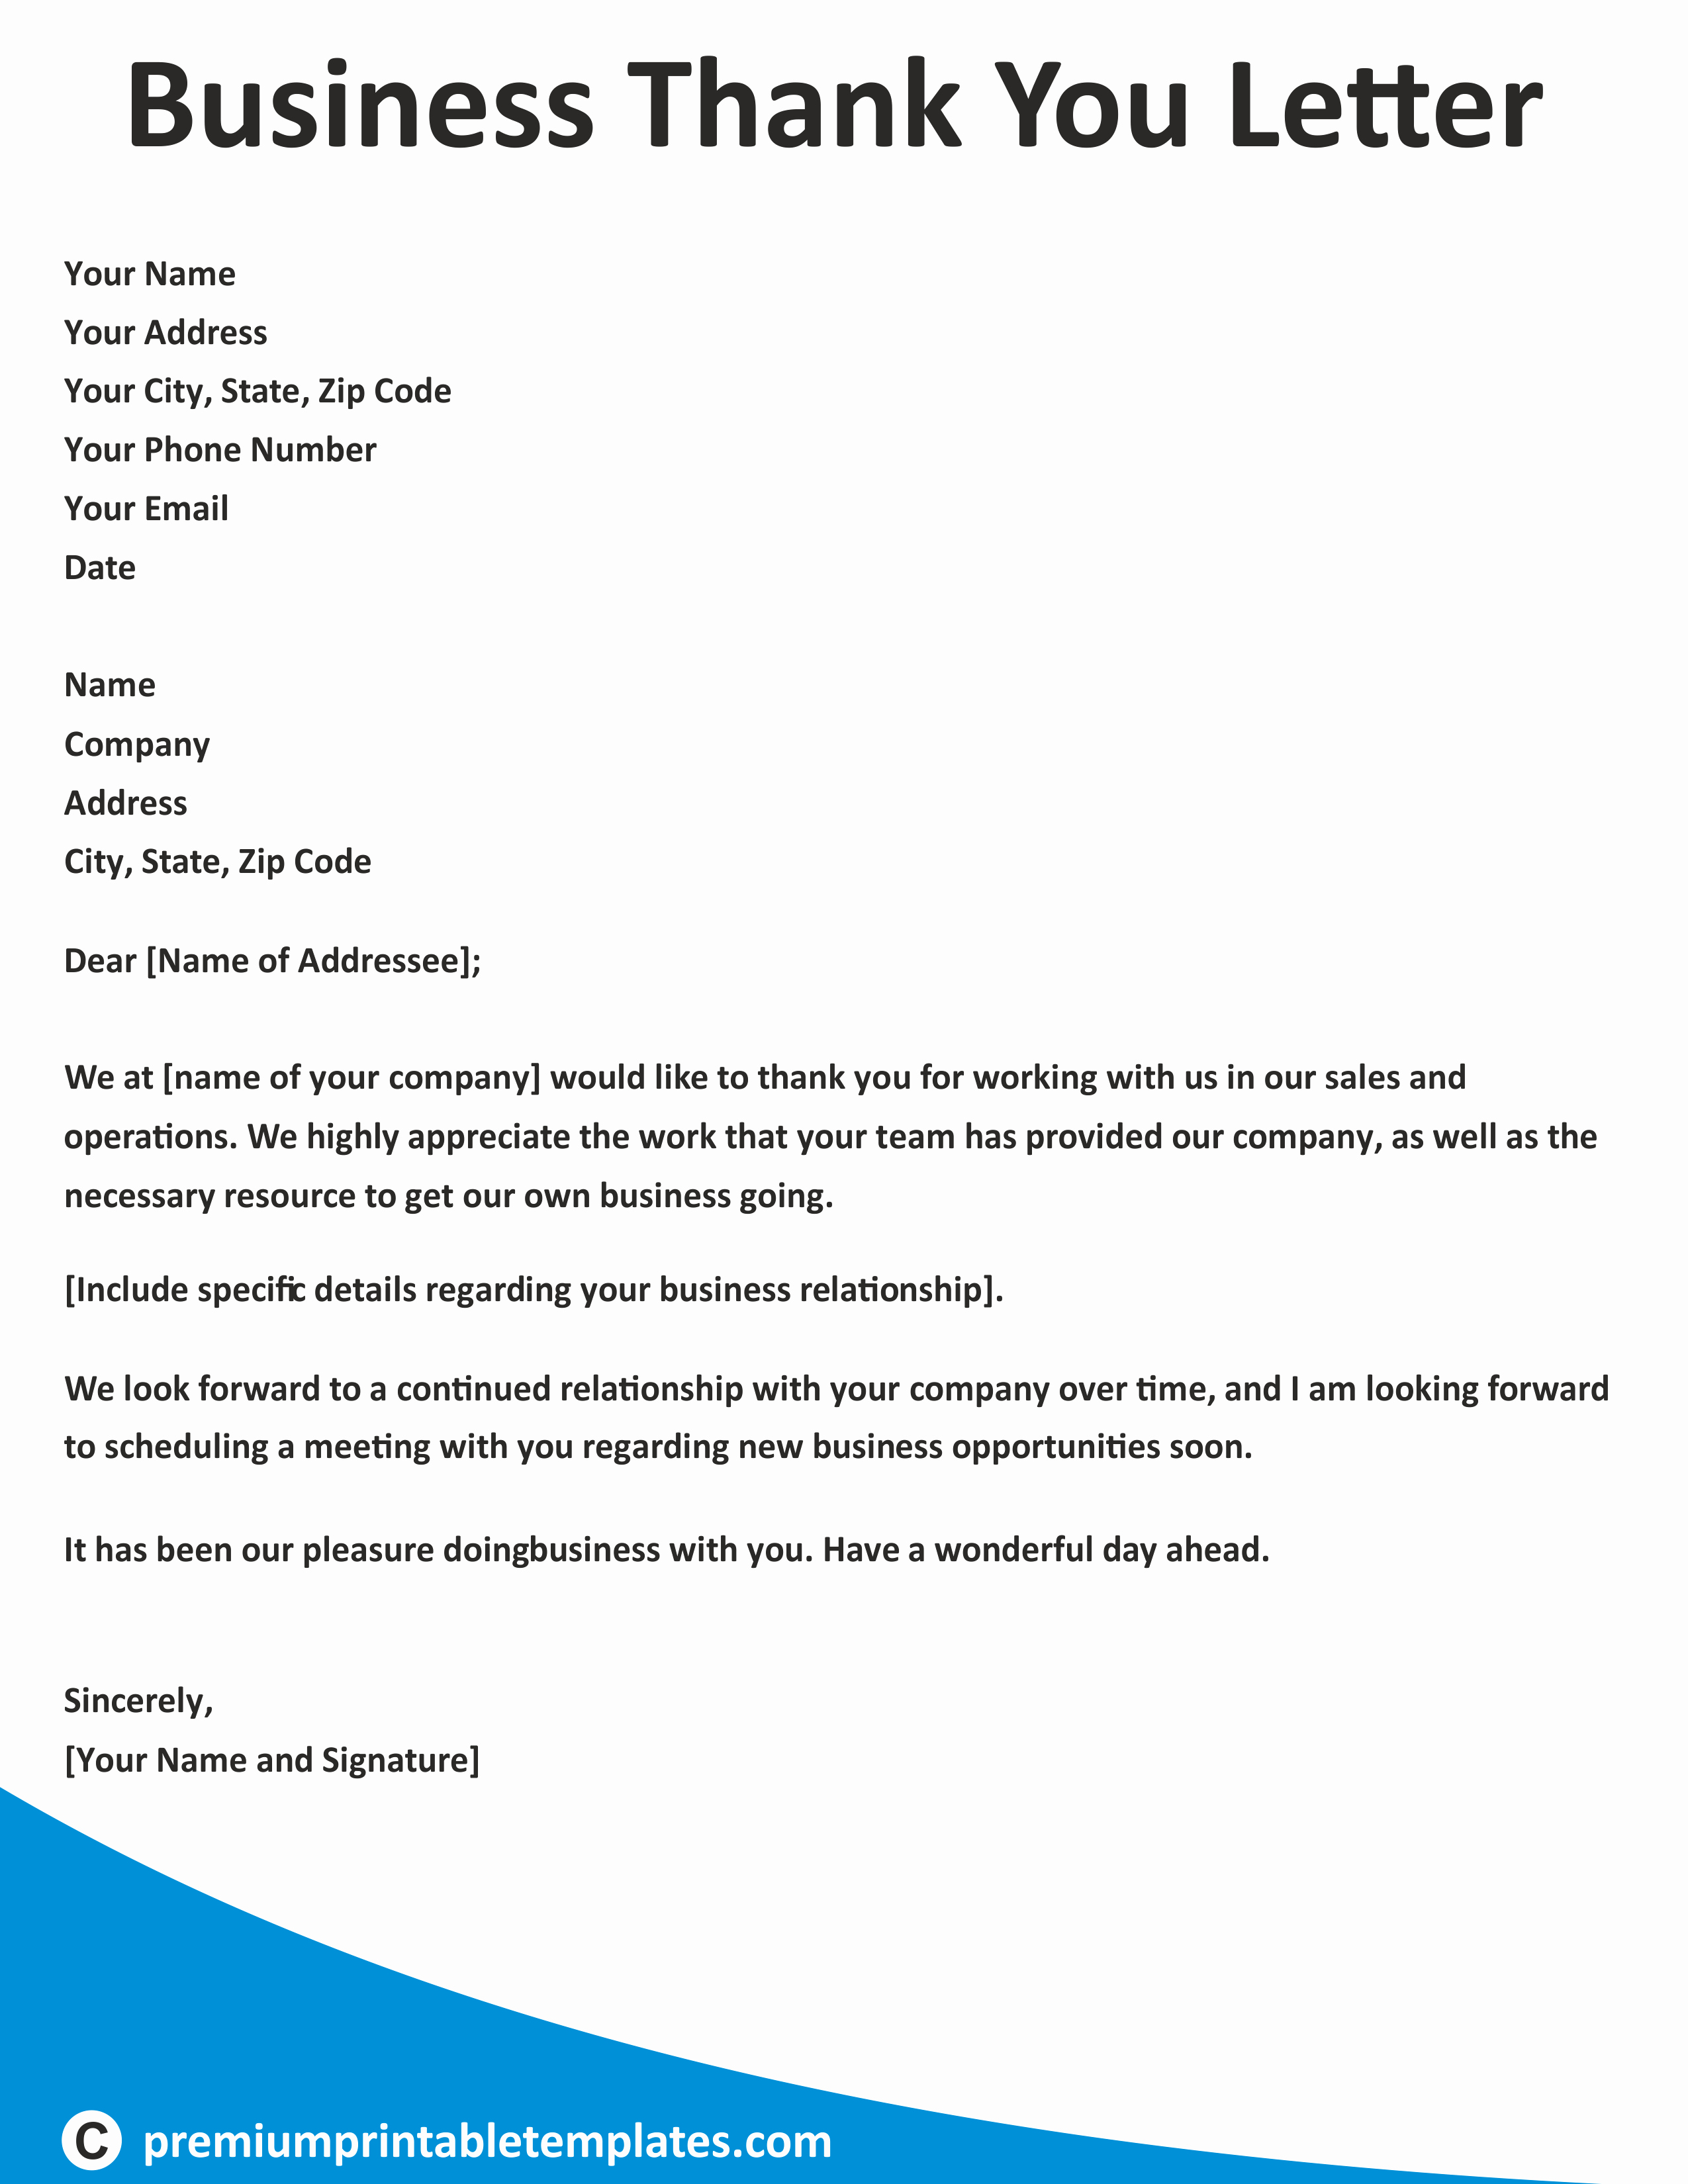 Thank You Letter Business Template Elegant Business Thank You Letter